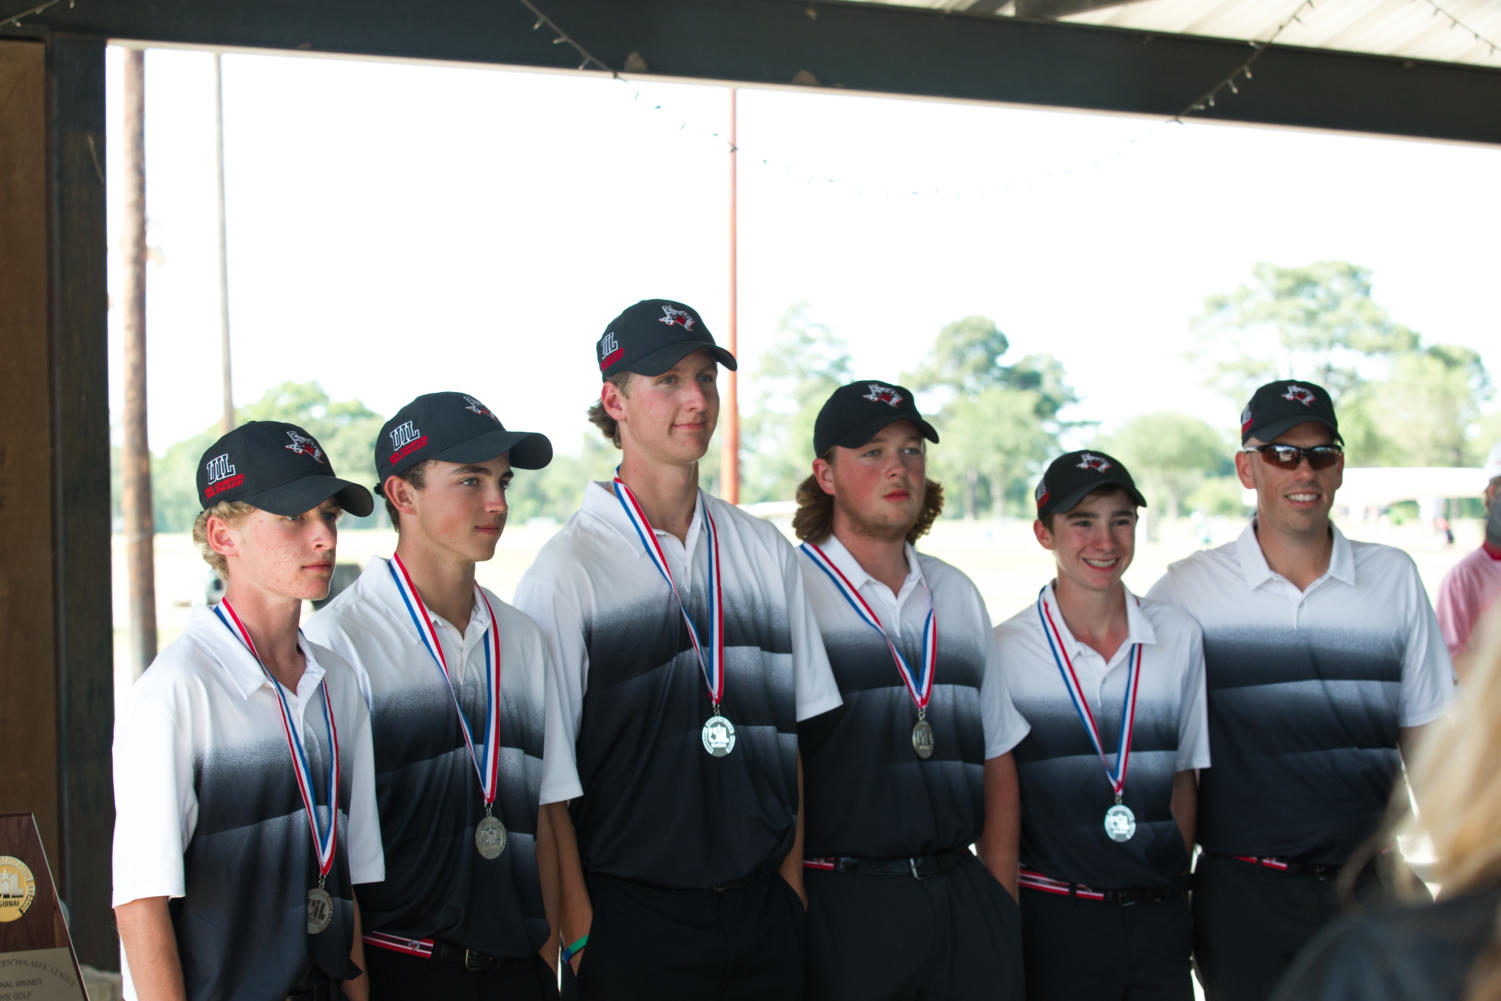 Eagles Golf takes second place at the Region Golf Tournament at Van Zandt Country Club in Canton, TX on April 24, 2018. (Georgia Penn / The Talon News)